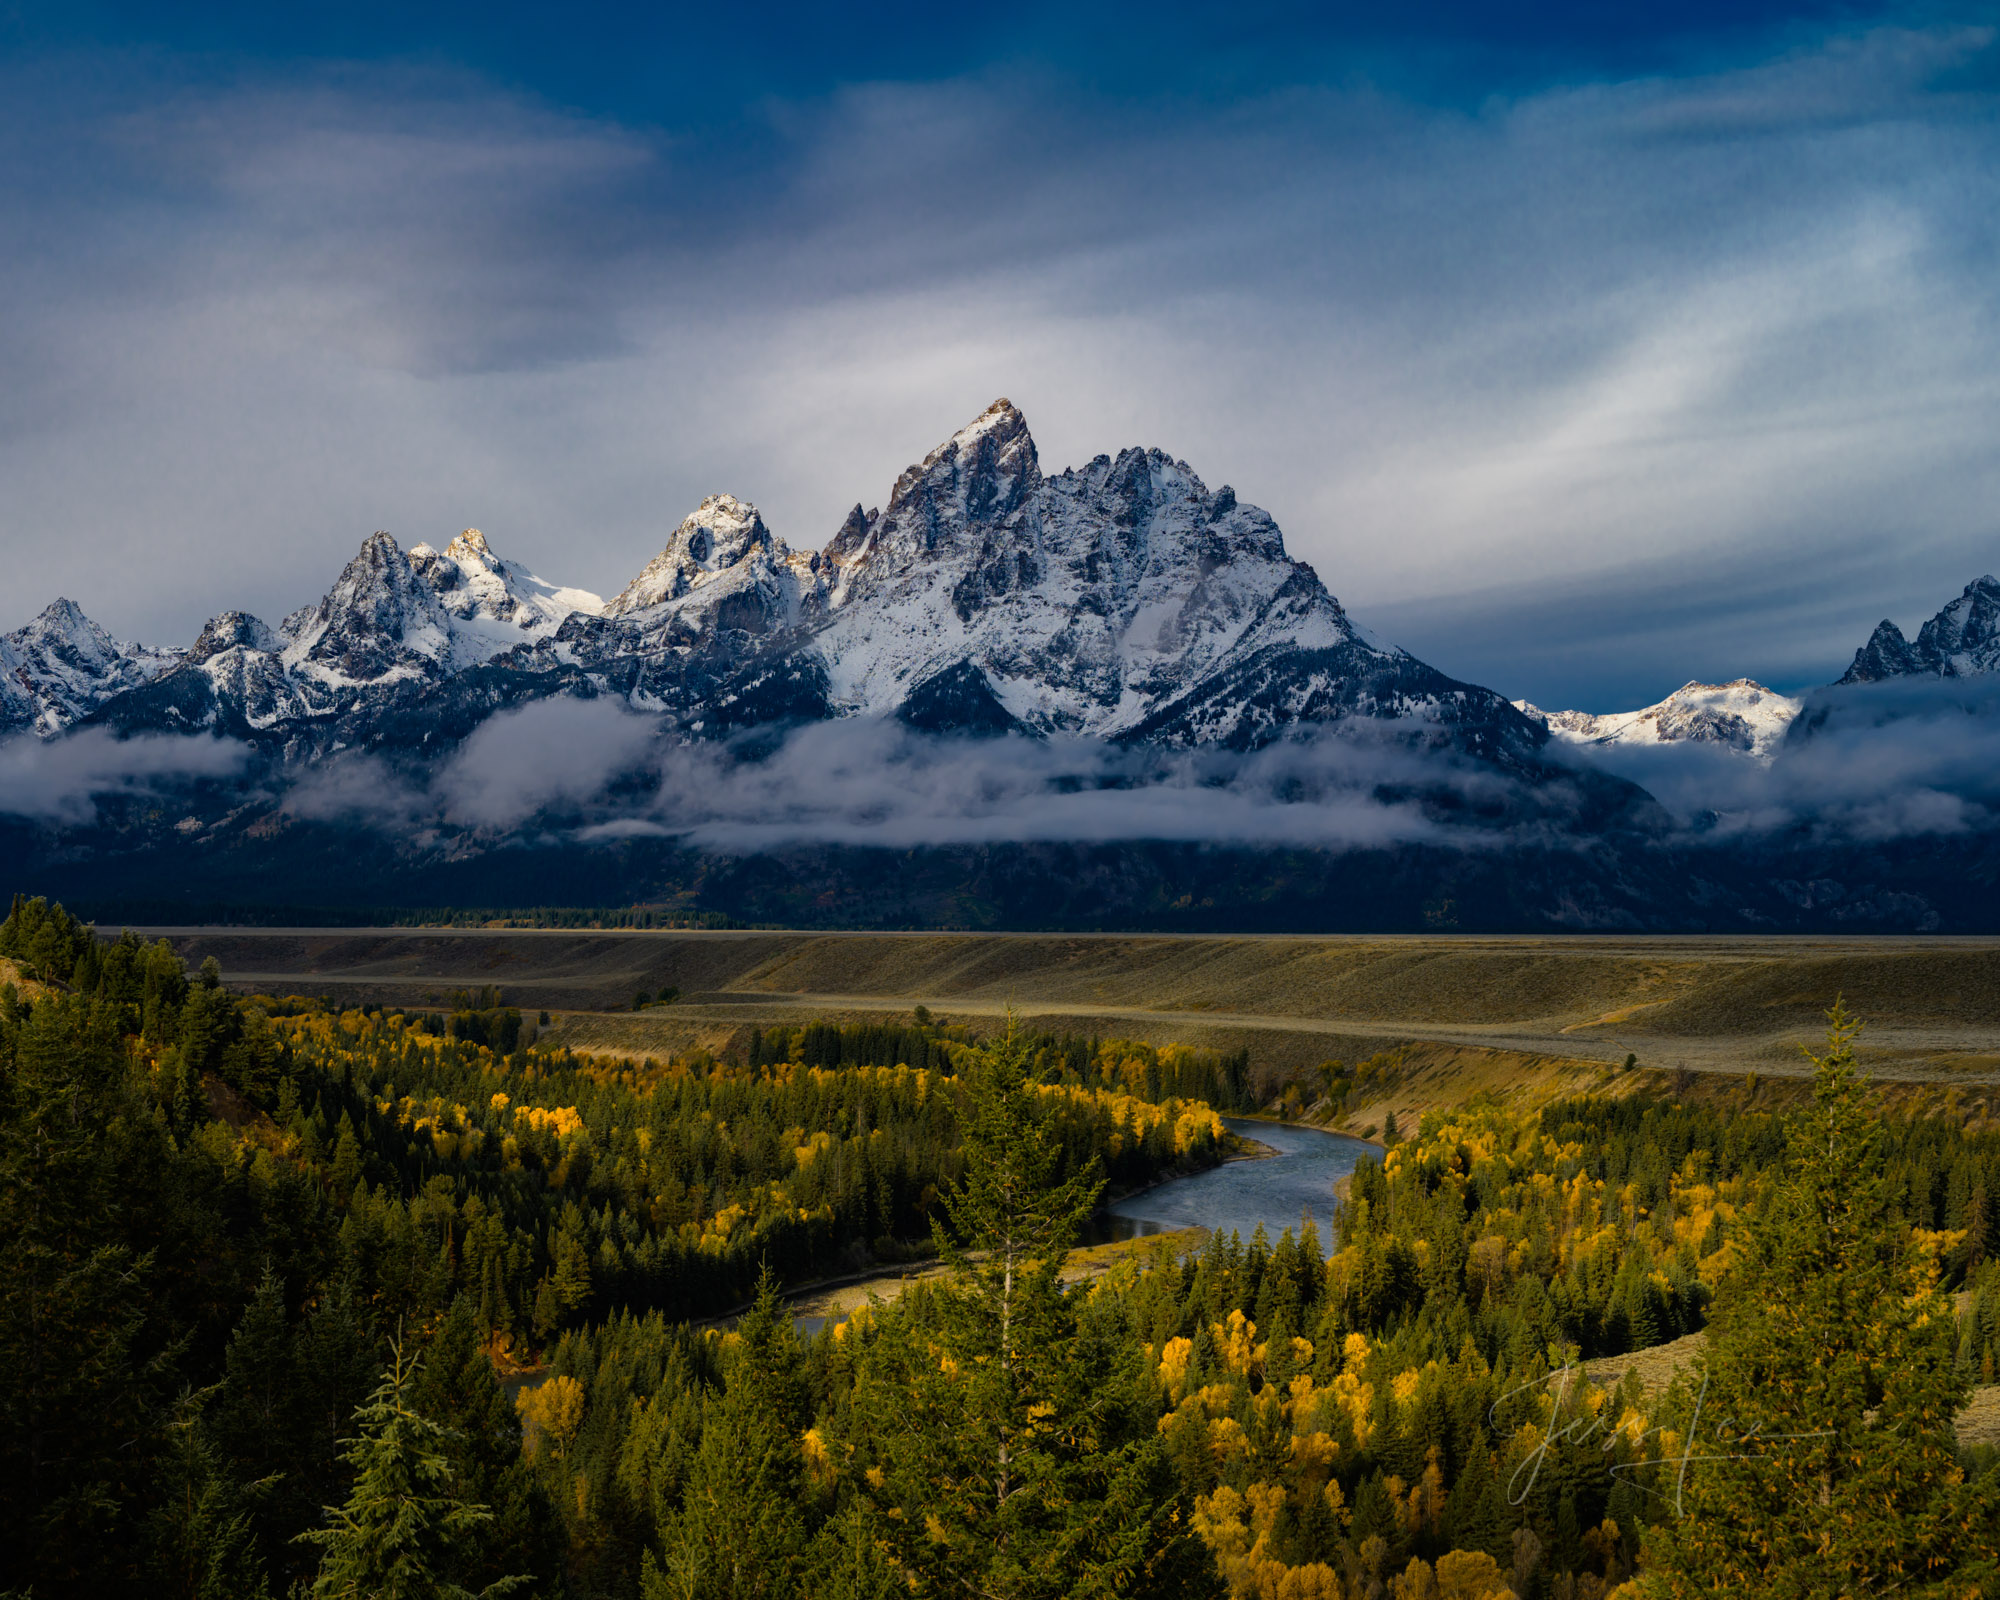 Breaking Storm over the Teton Range from Snake River Overlook.  A Fine Art Limited Edition of 200 Luxurious Prints.